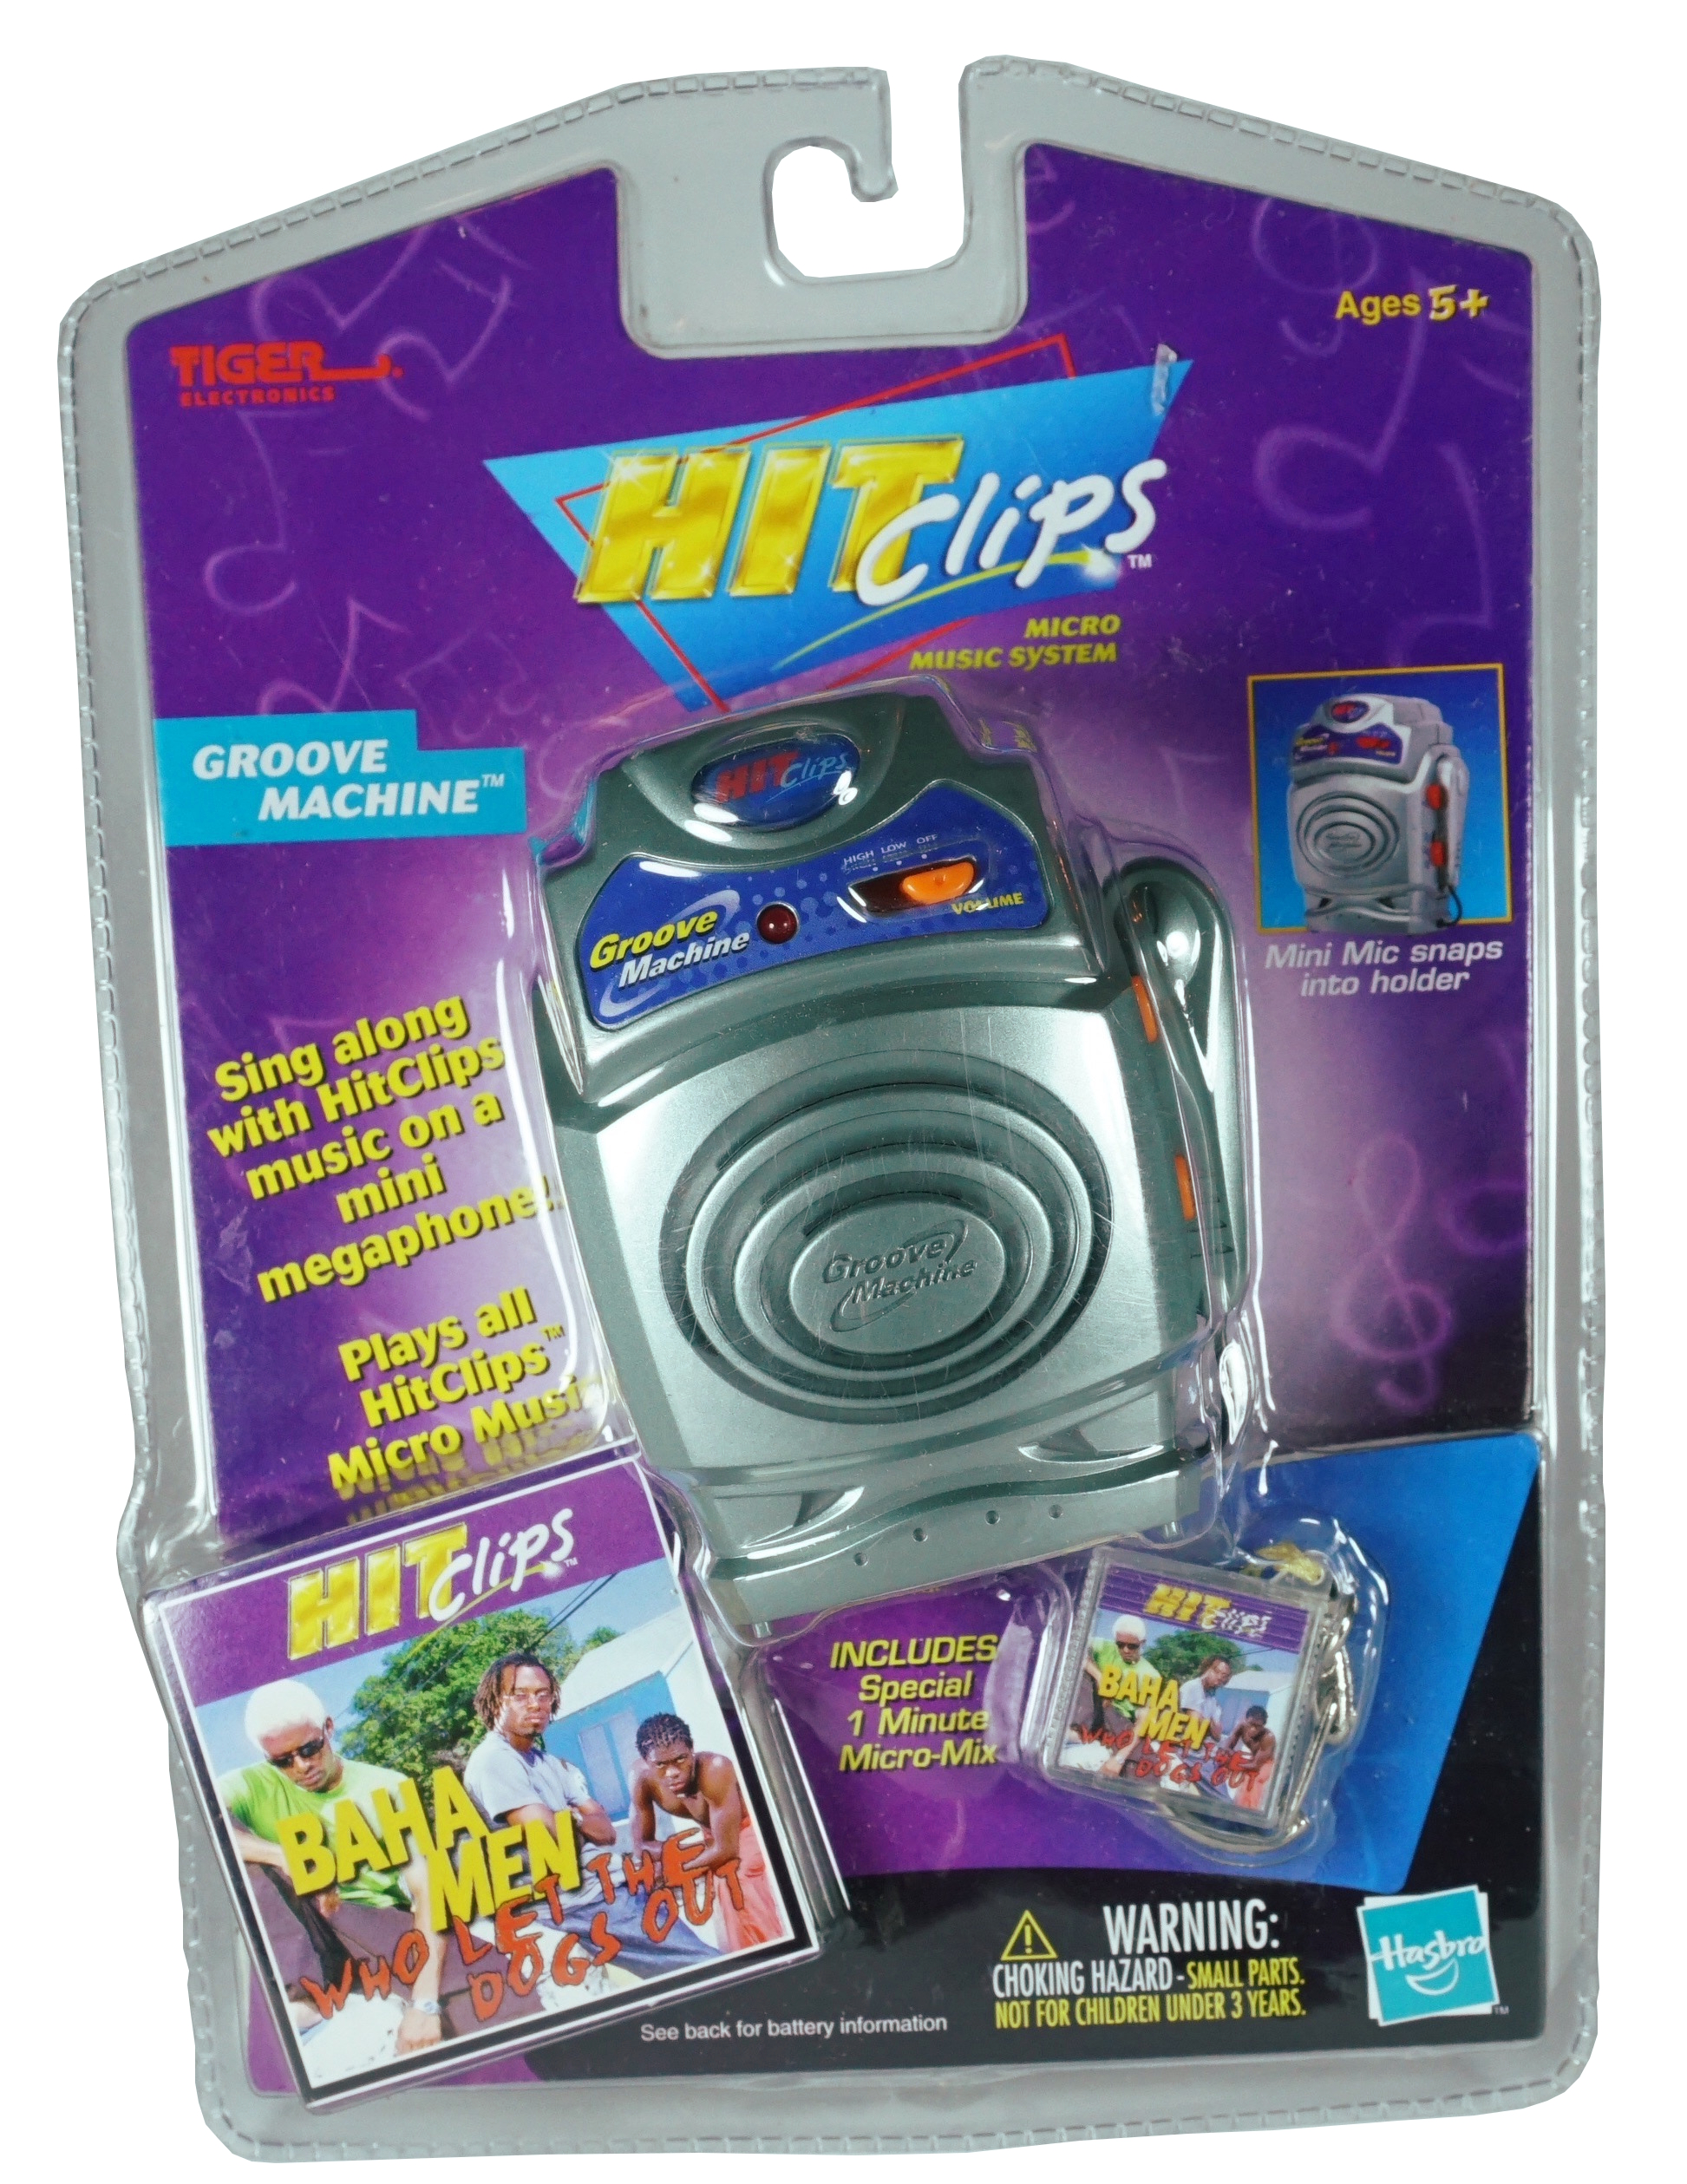 WLWLTDOO-2001-TOY-TIGER_HIT_CLIPS-GROOVE_MACHINE-FRONT.jpg